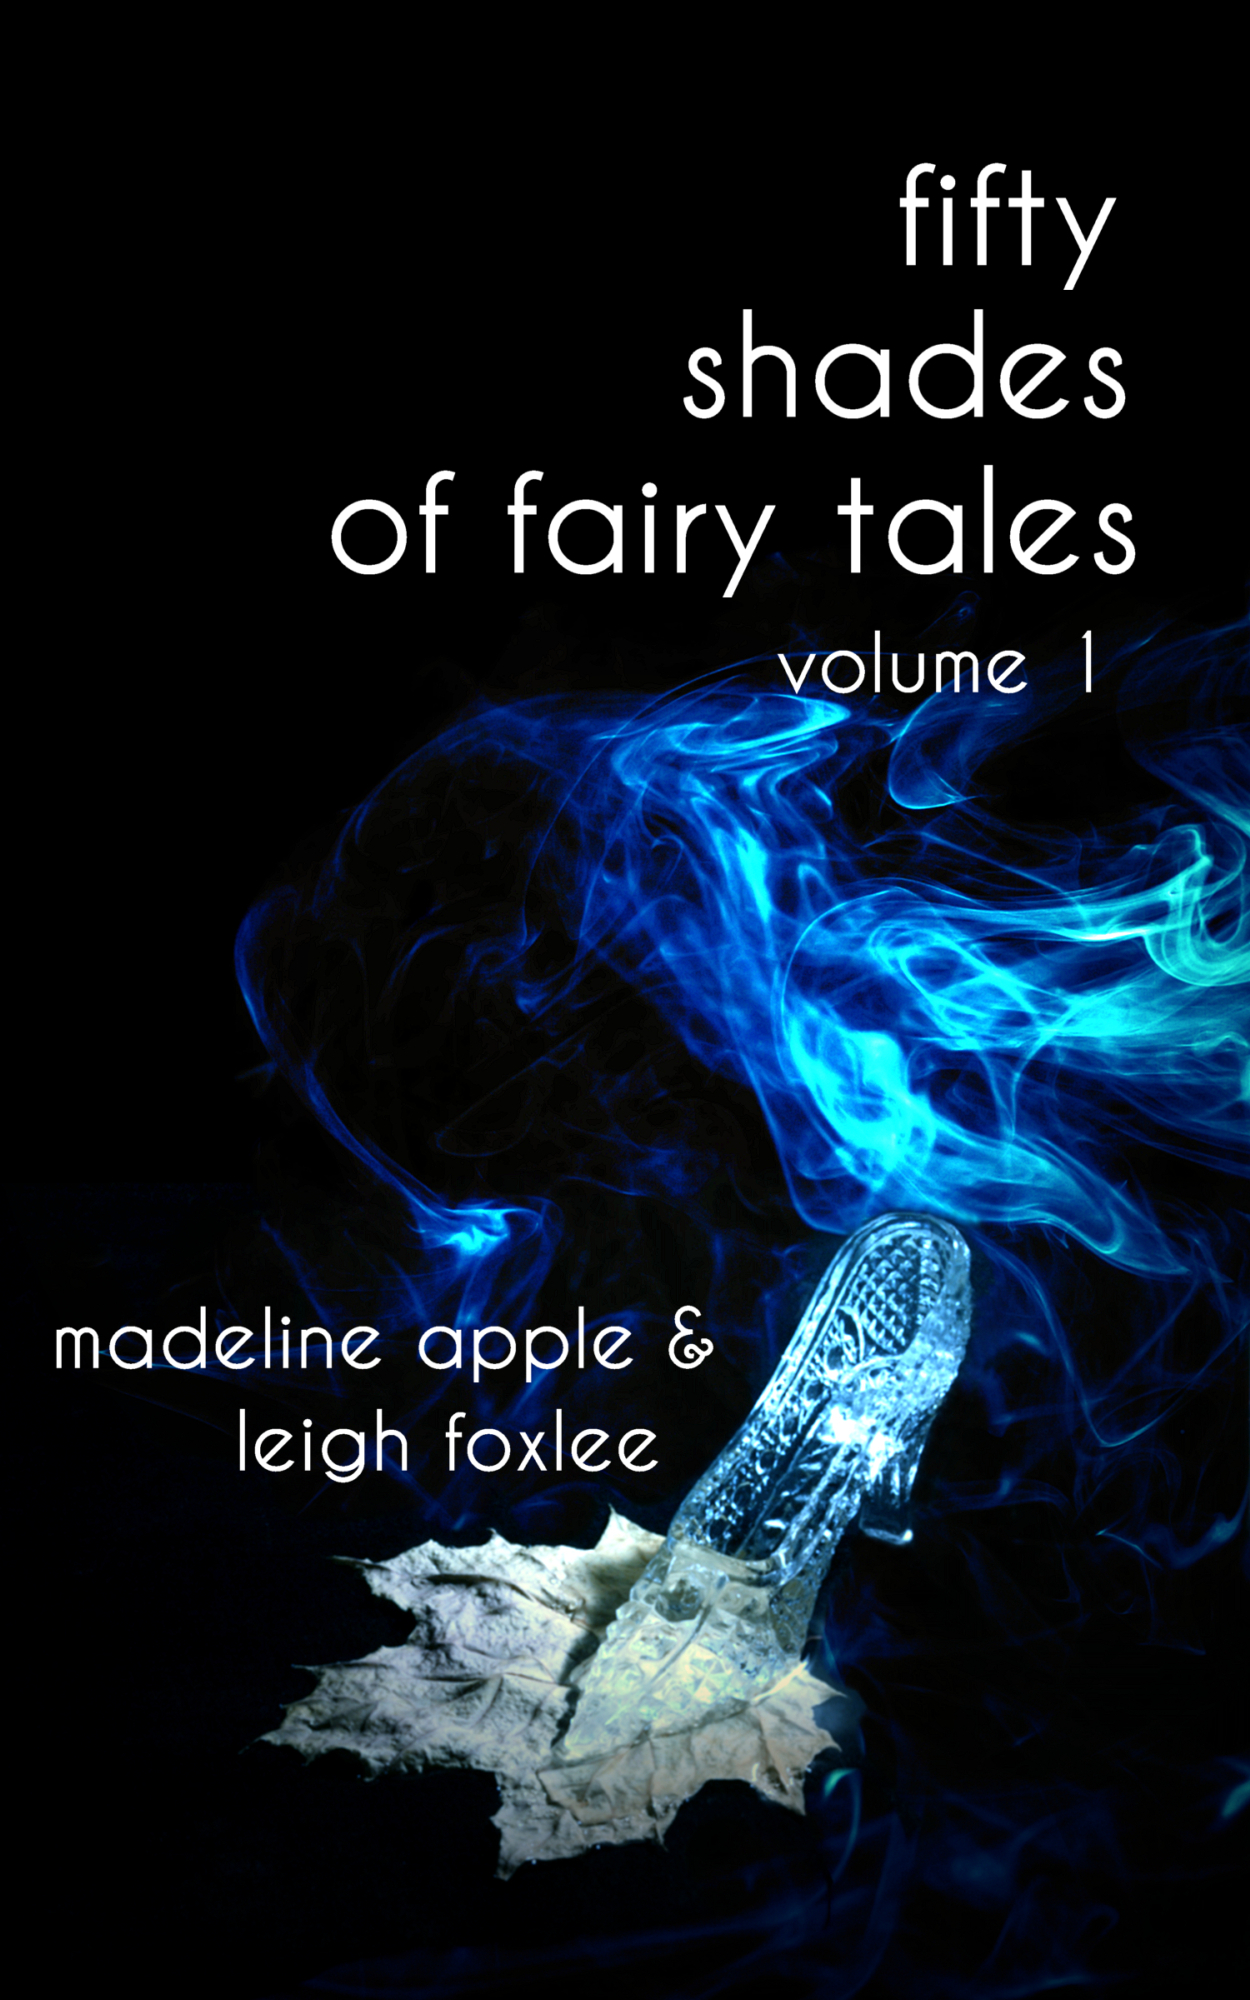 50 Shades of Fairy Tales Volume 1 By: Leigh Foxlee,Madeline Apple